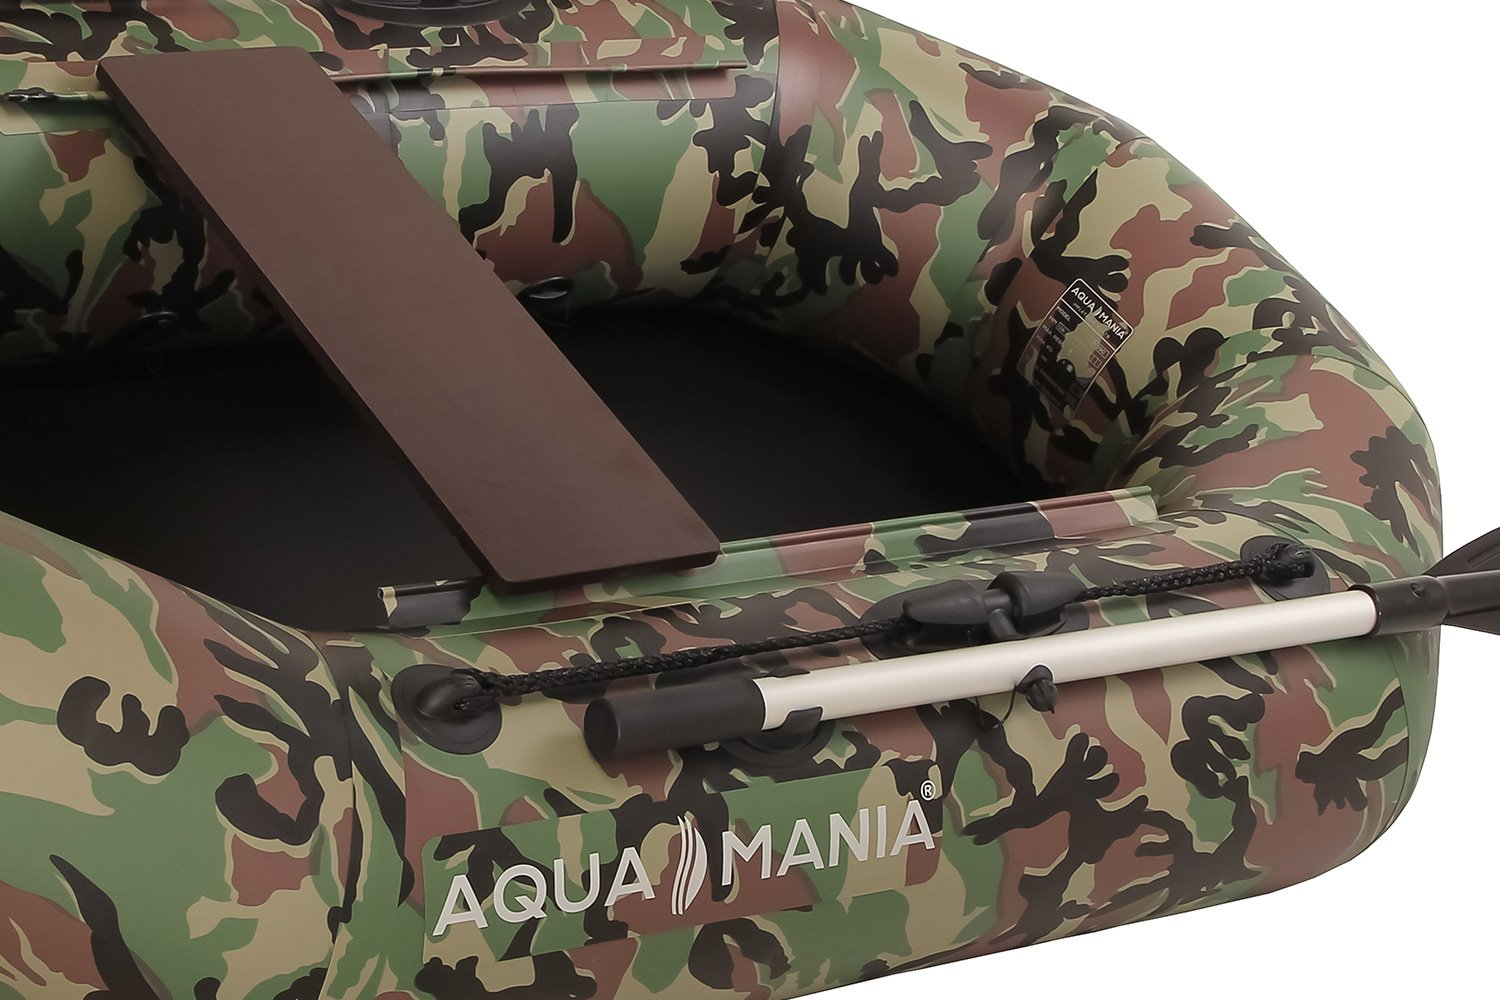 Amazon.com: Aquamania A-190 cm - 74.8